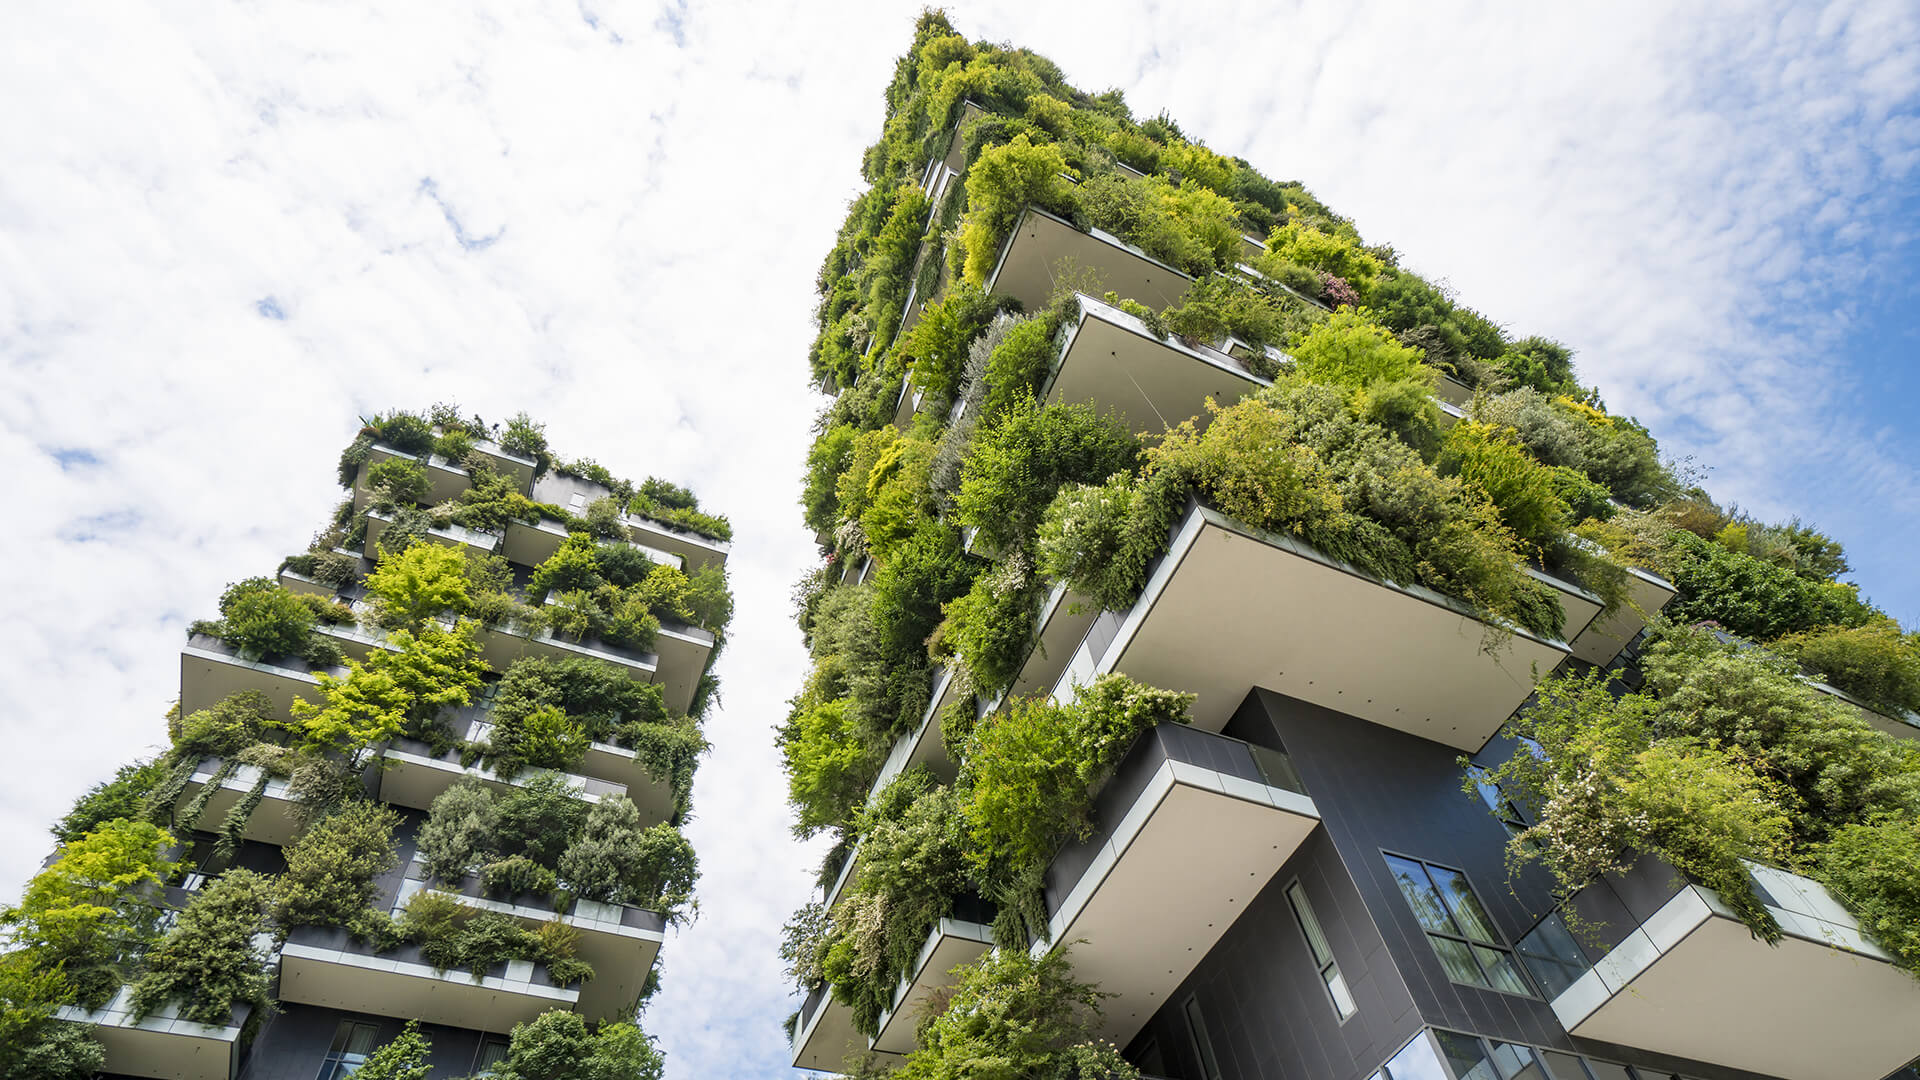 10 Things architects learn about in Environmental studies in college - Sheet2